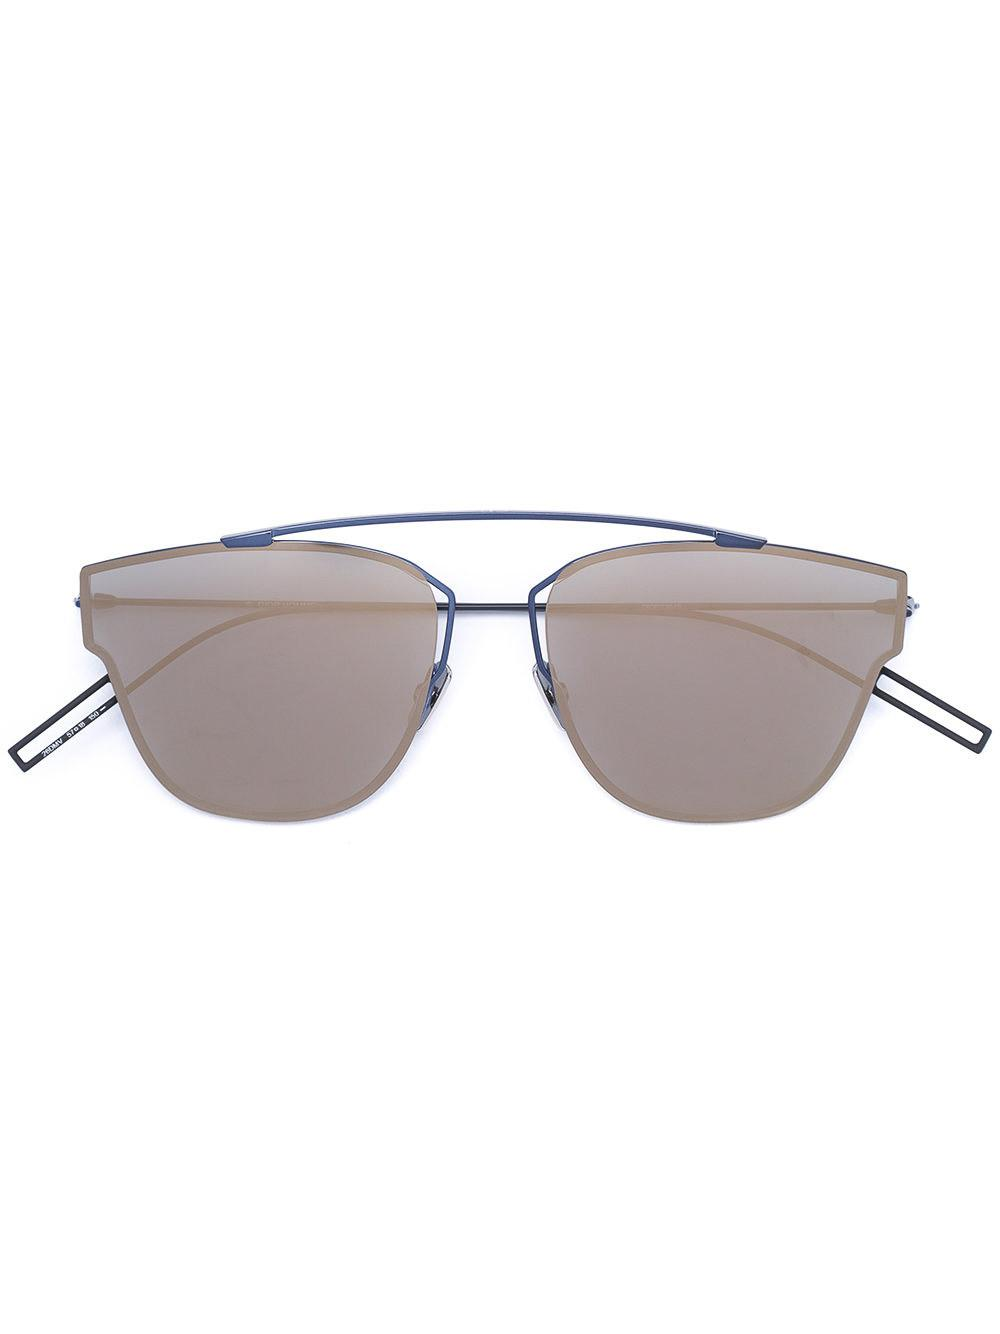 48ef38323d6 Dior  204S  Rimless Aviator Sunglasses